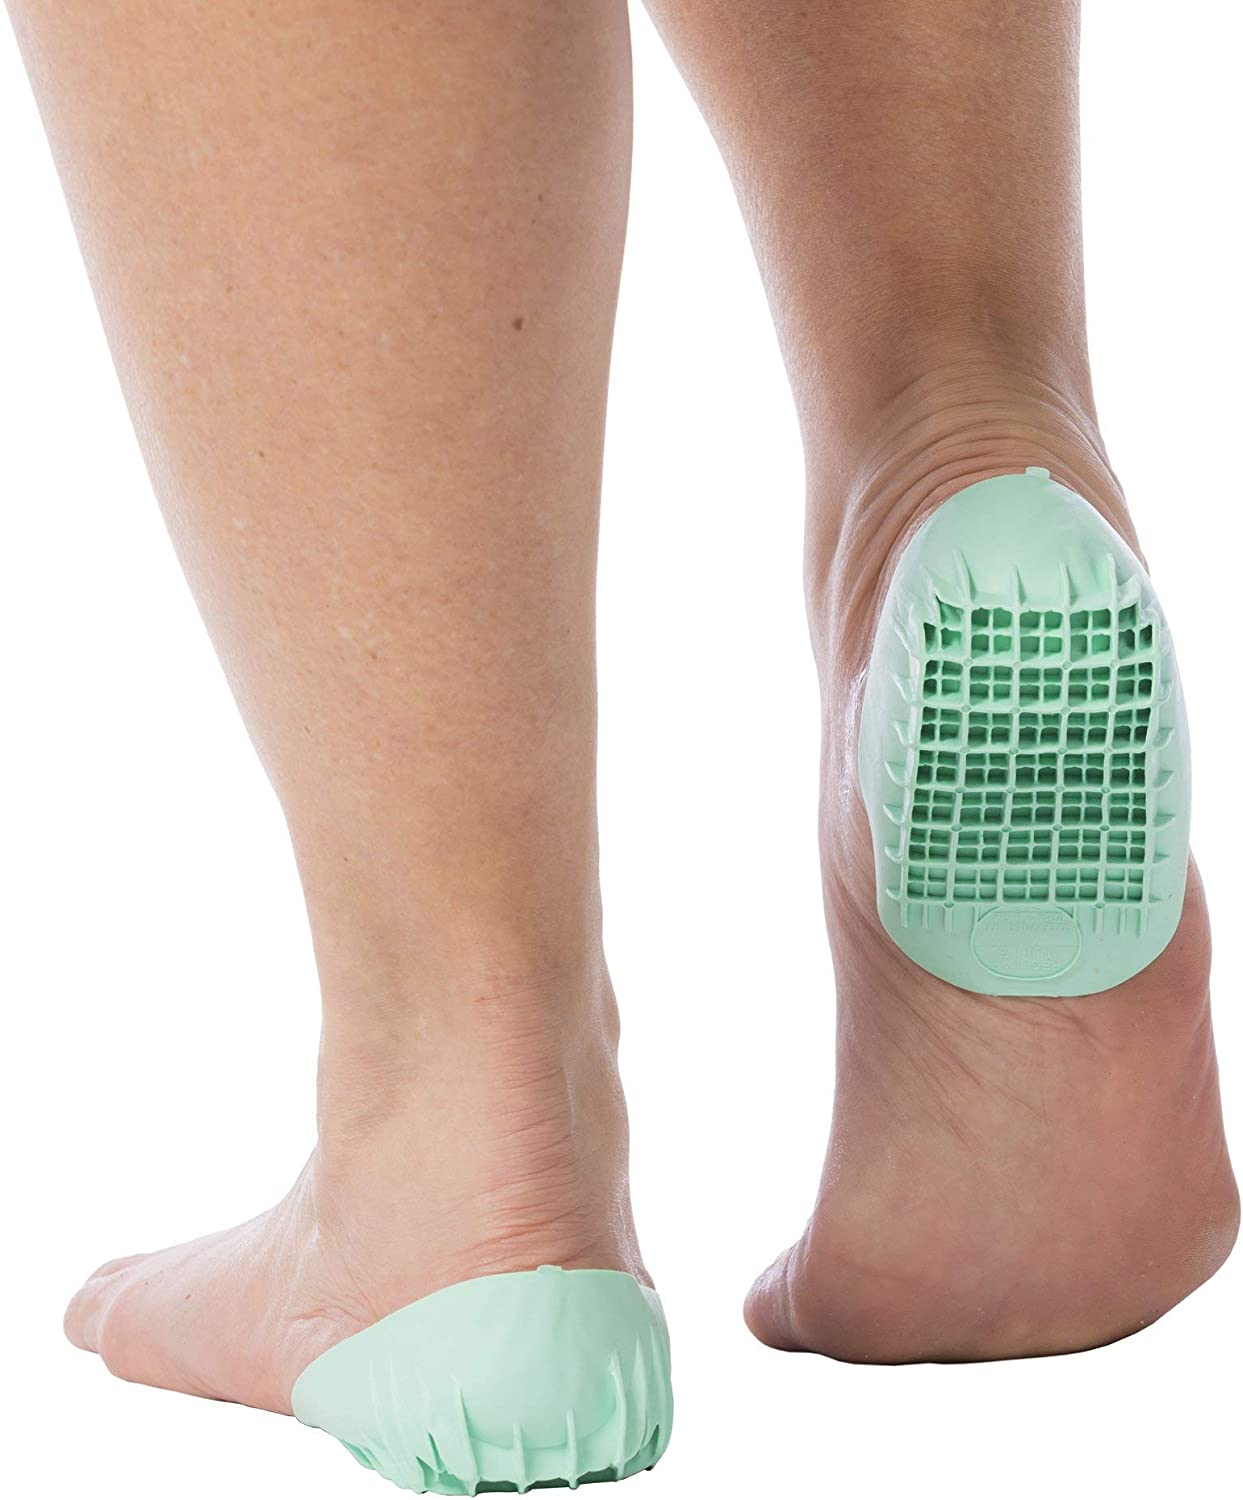 2-Pairs Severs Disease and Heel Pain Relief Tuli/'s Heavy Duty Heel Cups Green Pro Heel Cup Shock Absorption and Cushion Inserts for Plantar Fasciitis